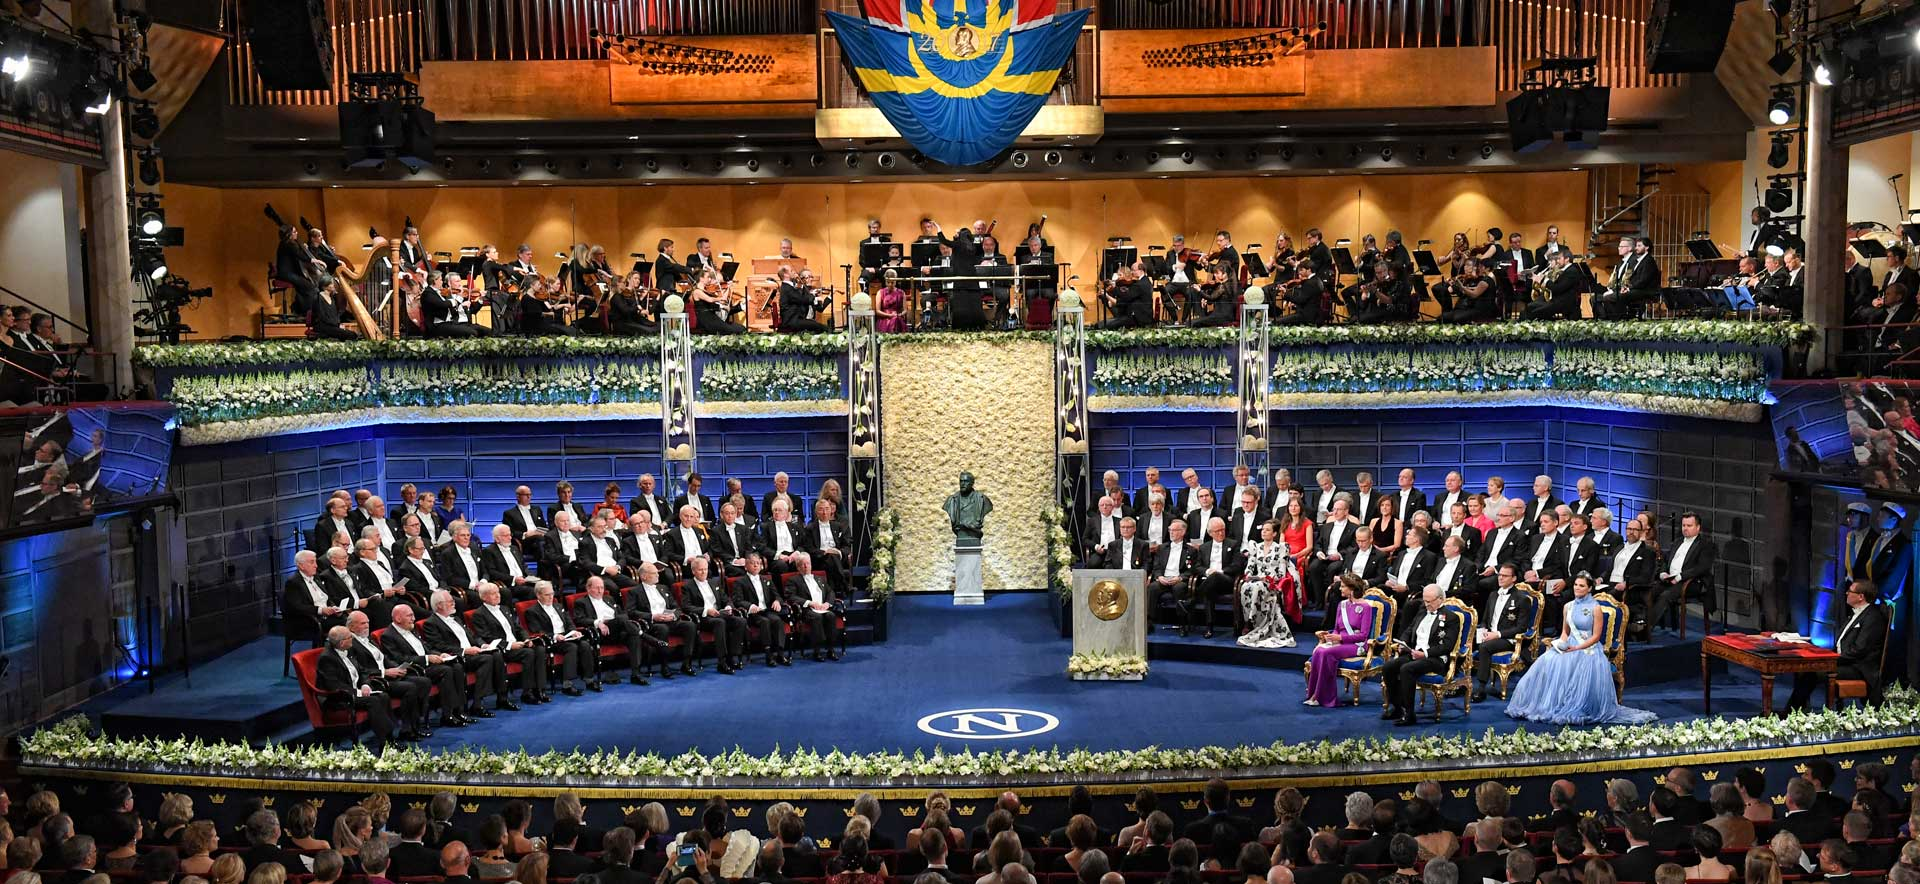 Nobel Prize Award Ceremony takes place at the Stockholm Concert Hall